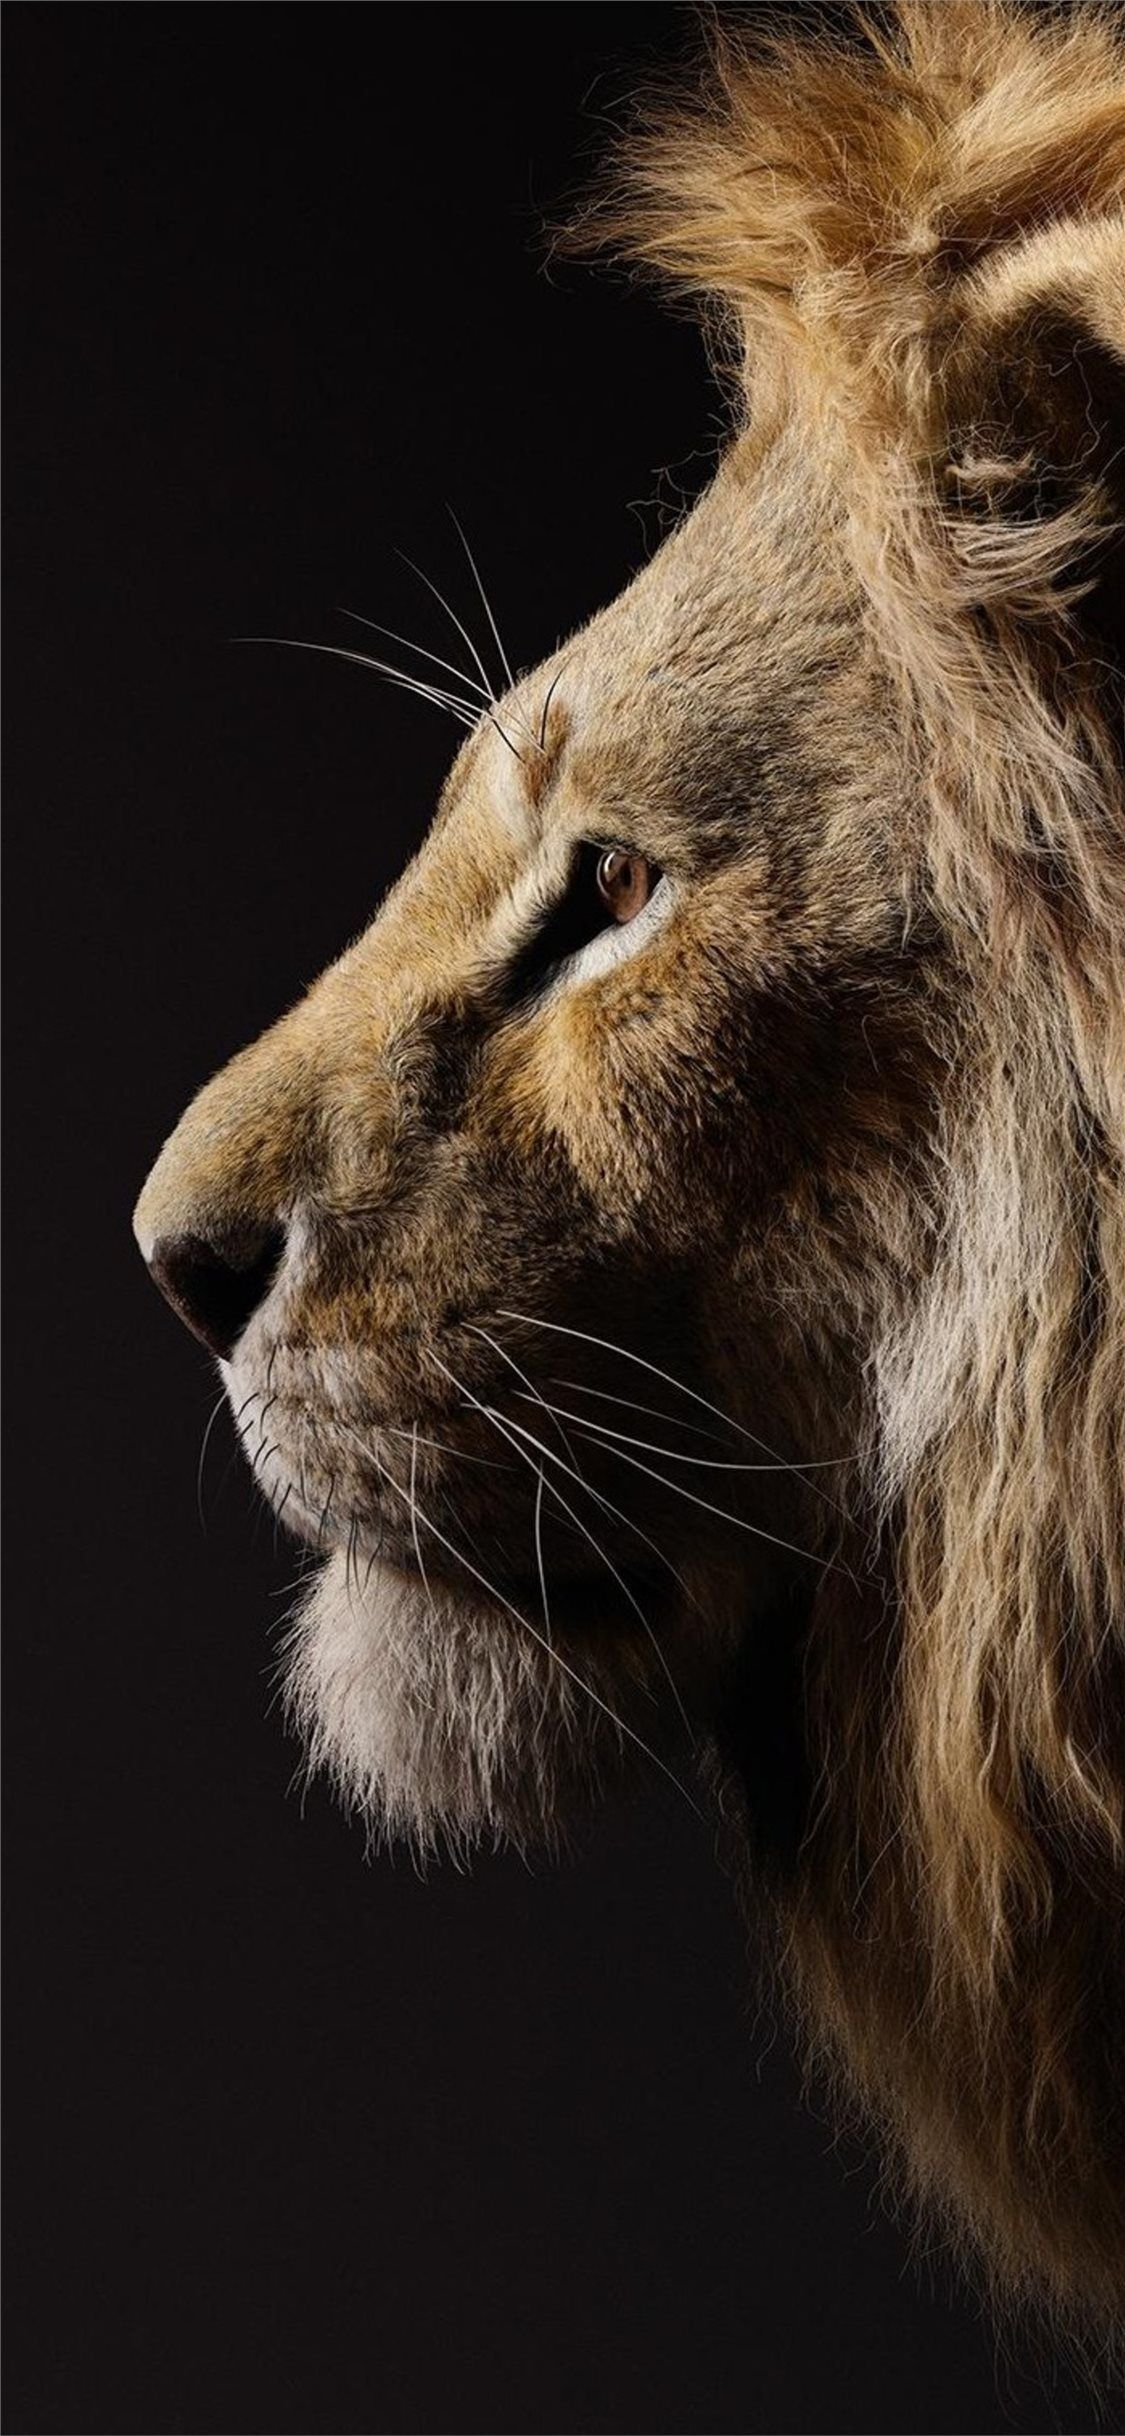 Beaty Donald Download Free Glover Iphone King Lion Movies Phonebackgroundsdisneythelionking Si Lion Photography Lion Wallpaper Iphone Lion Wallpaper Lock screen lion king wallpaper hd 2019